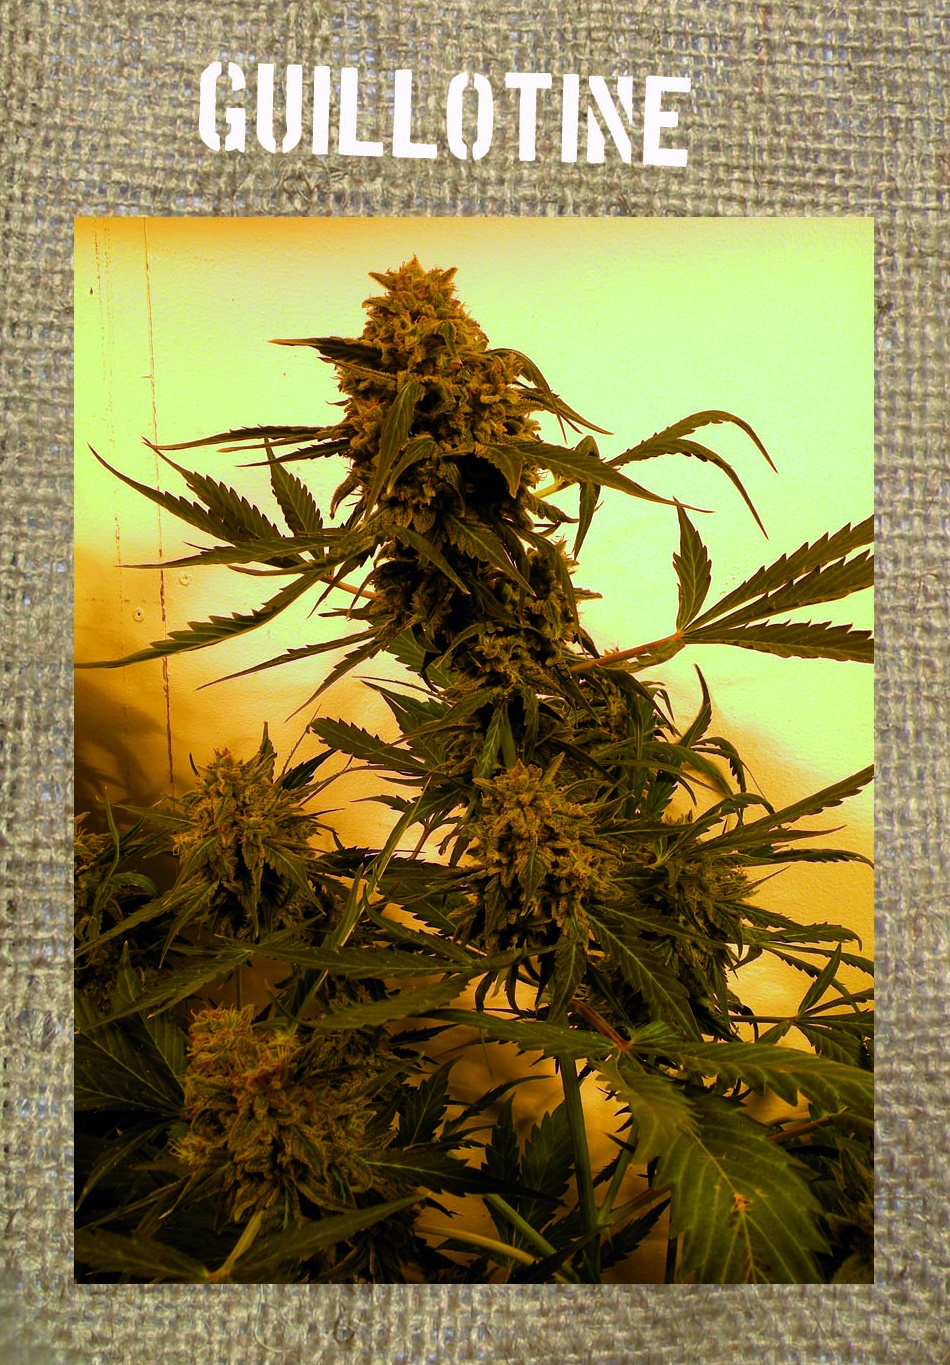 Guillotine Auto Feminised Seeds